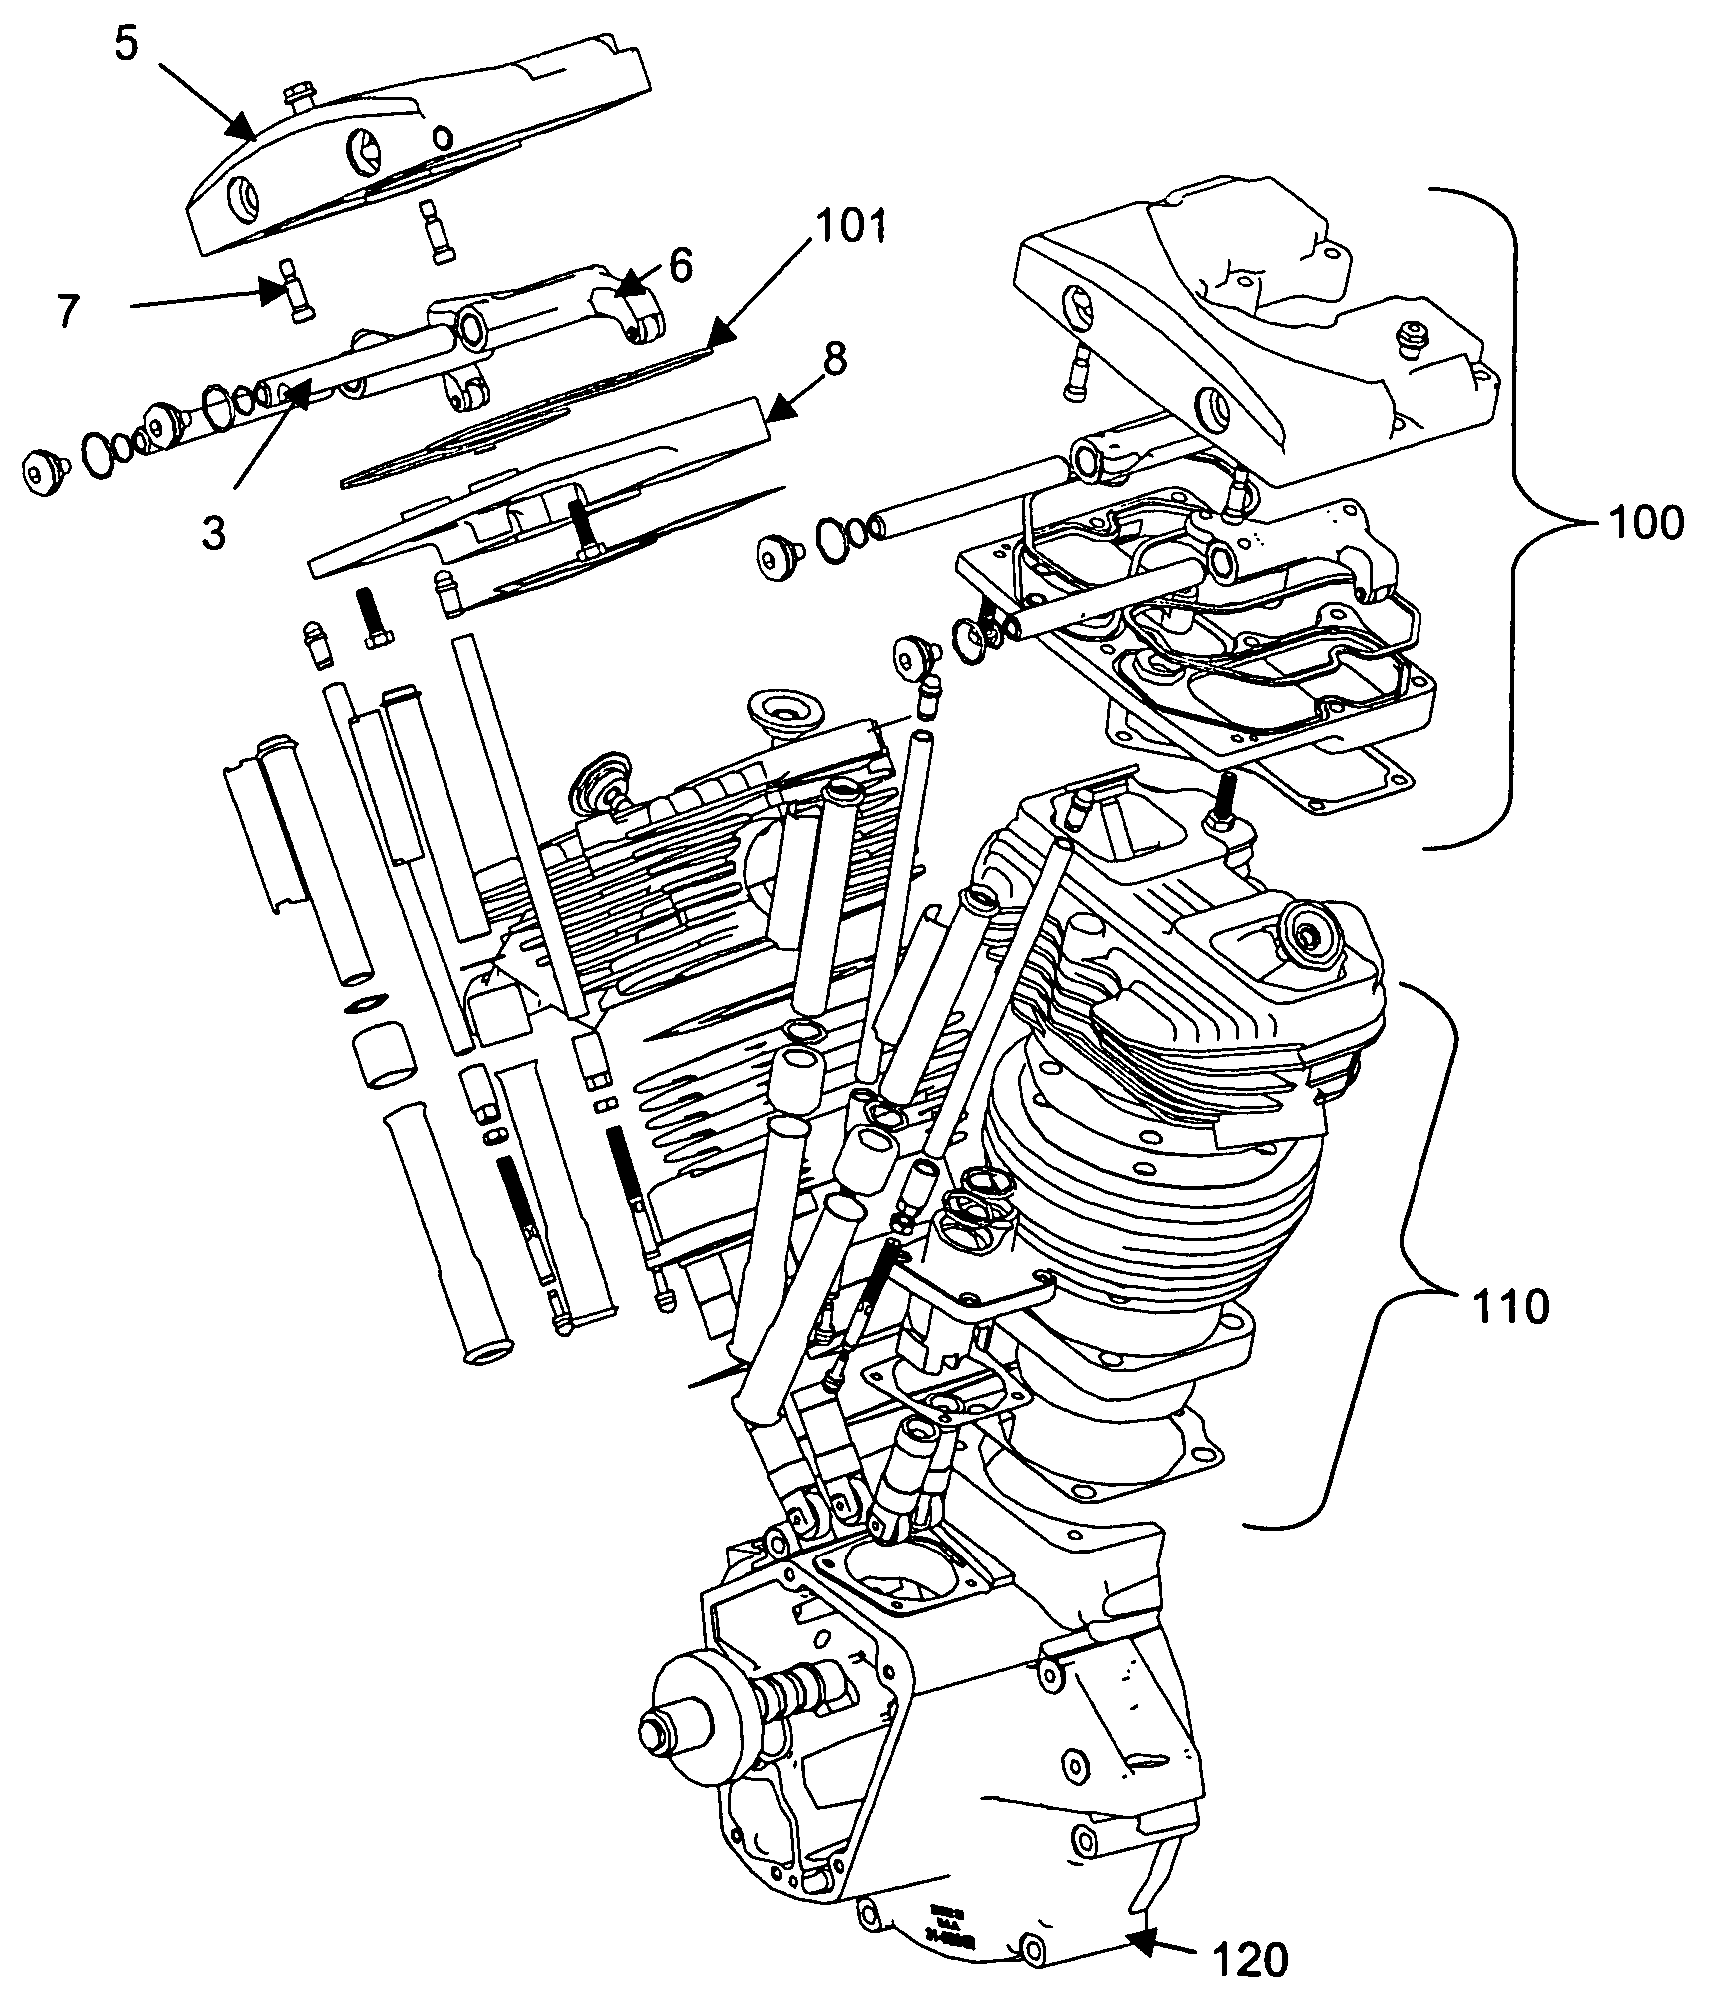 harley davidson motorcycle parts diagram relay wiring light bar exploded of engine autos post